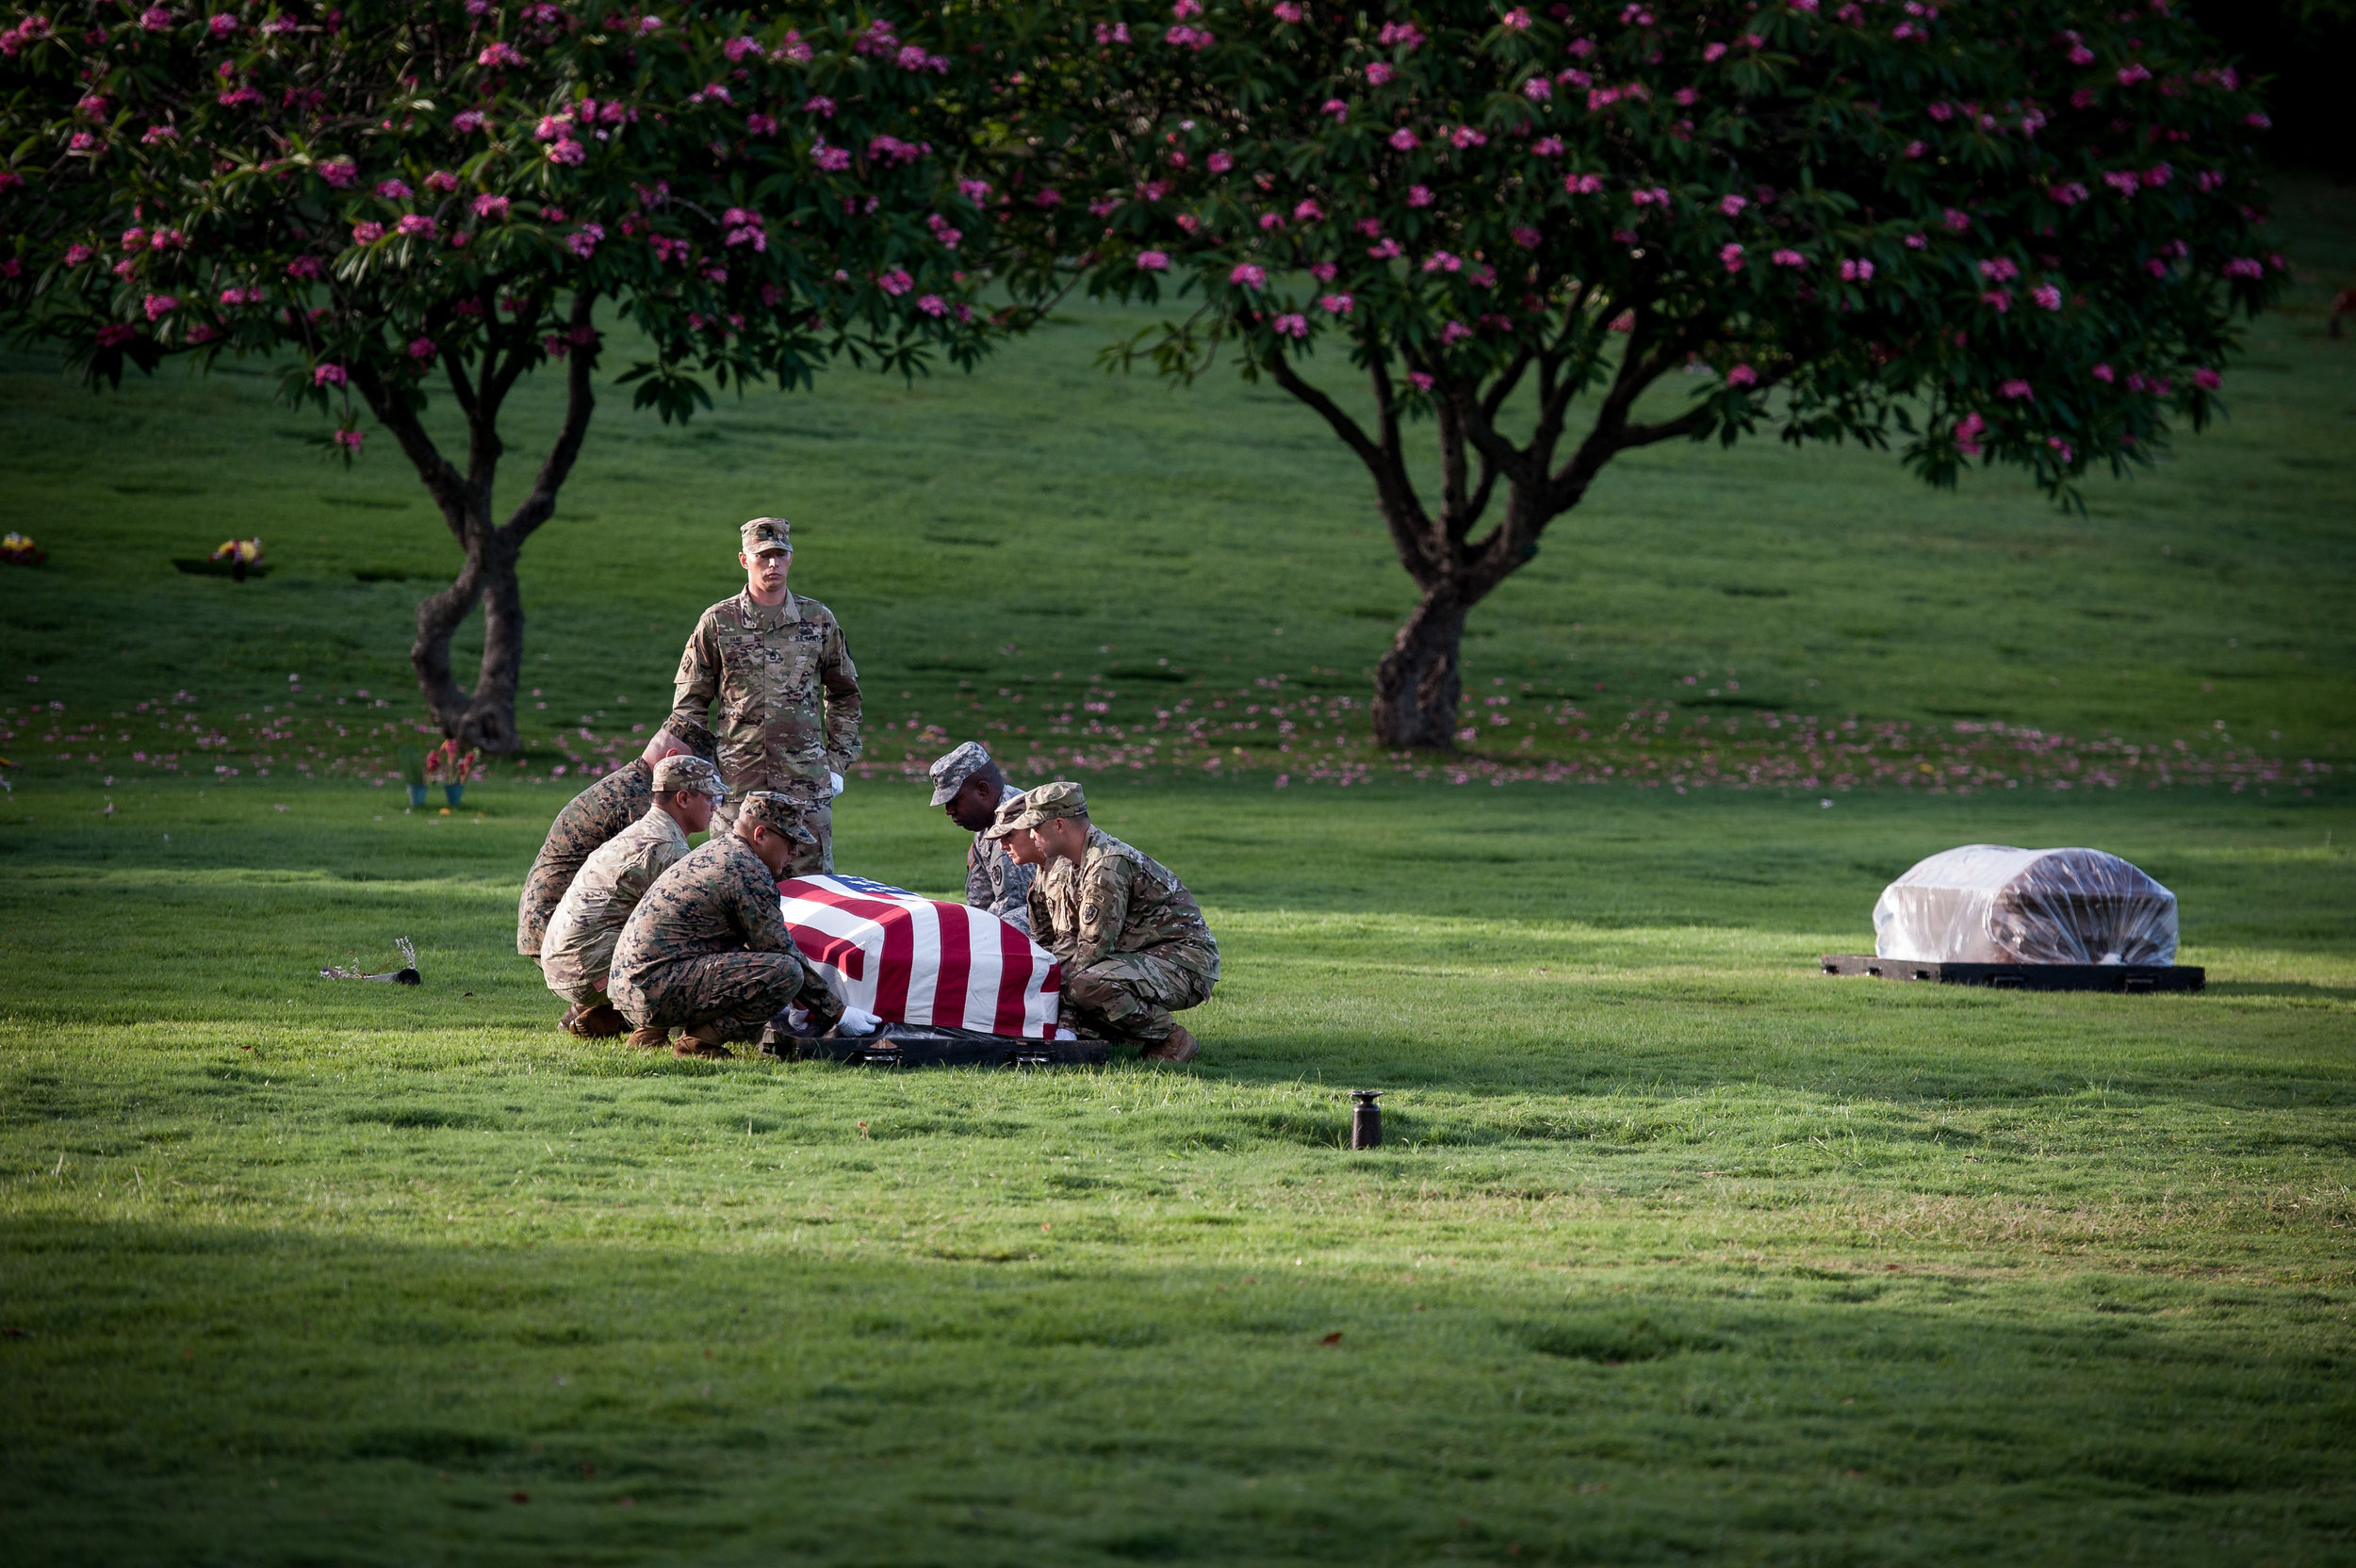 Defense POW/MIA Accounting Agency (DPAA) personnel prepare to transport a casket during a disinterment ceremony at the National Memorial Cemetery of the Pacific, Honolulu, Hawaii, June 12, 2017. (Credit: Petty Officer 2nd Class Seth Coulter via DVIDS)